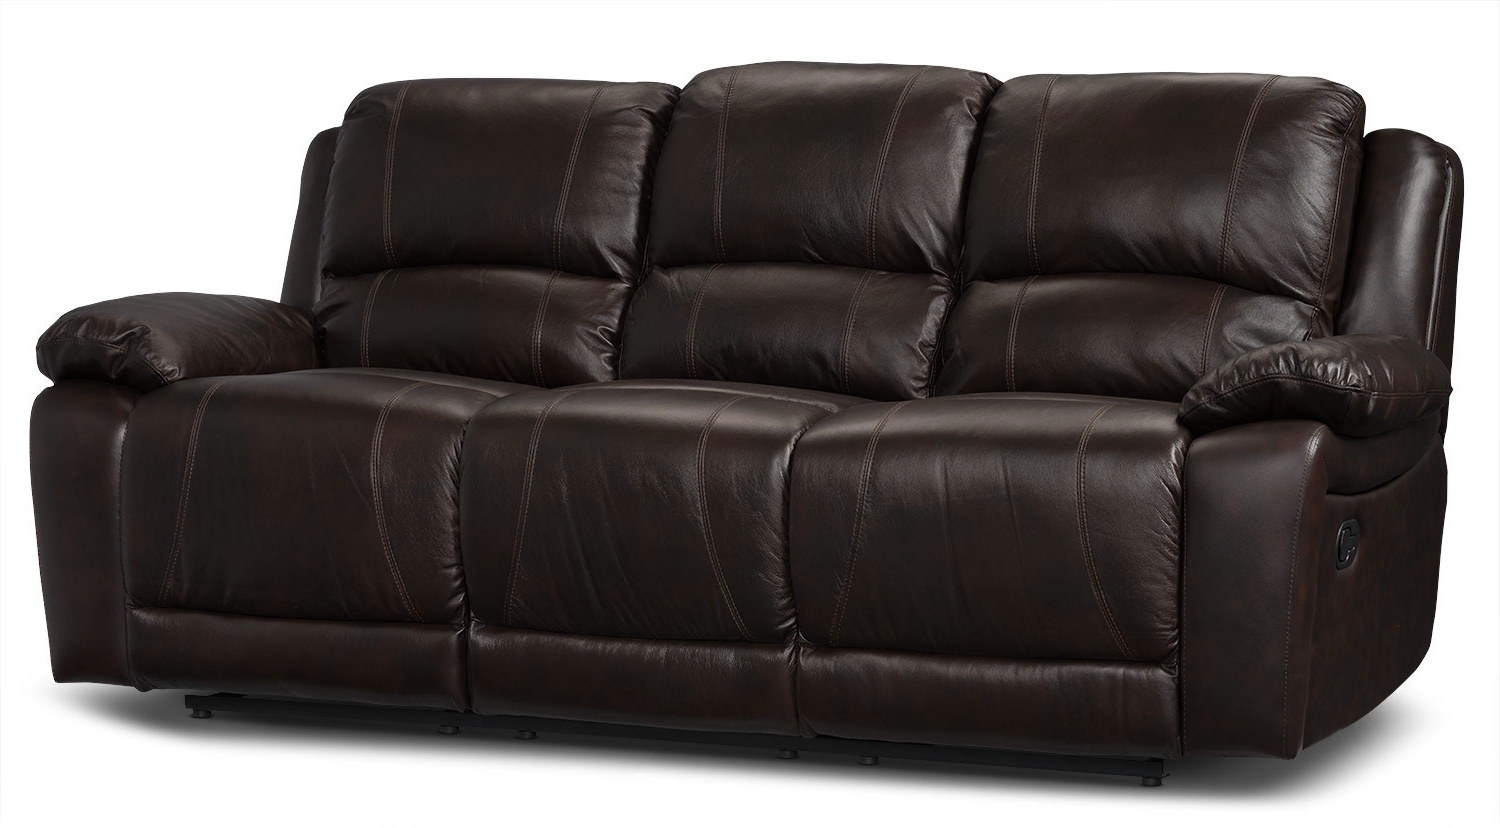 The Brick Leather Sofas Pertaining To Most Up To Date Real Leather Recliner Sofa 41 With Real Leather Recliner Sofa (View 17 of 20)